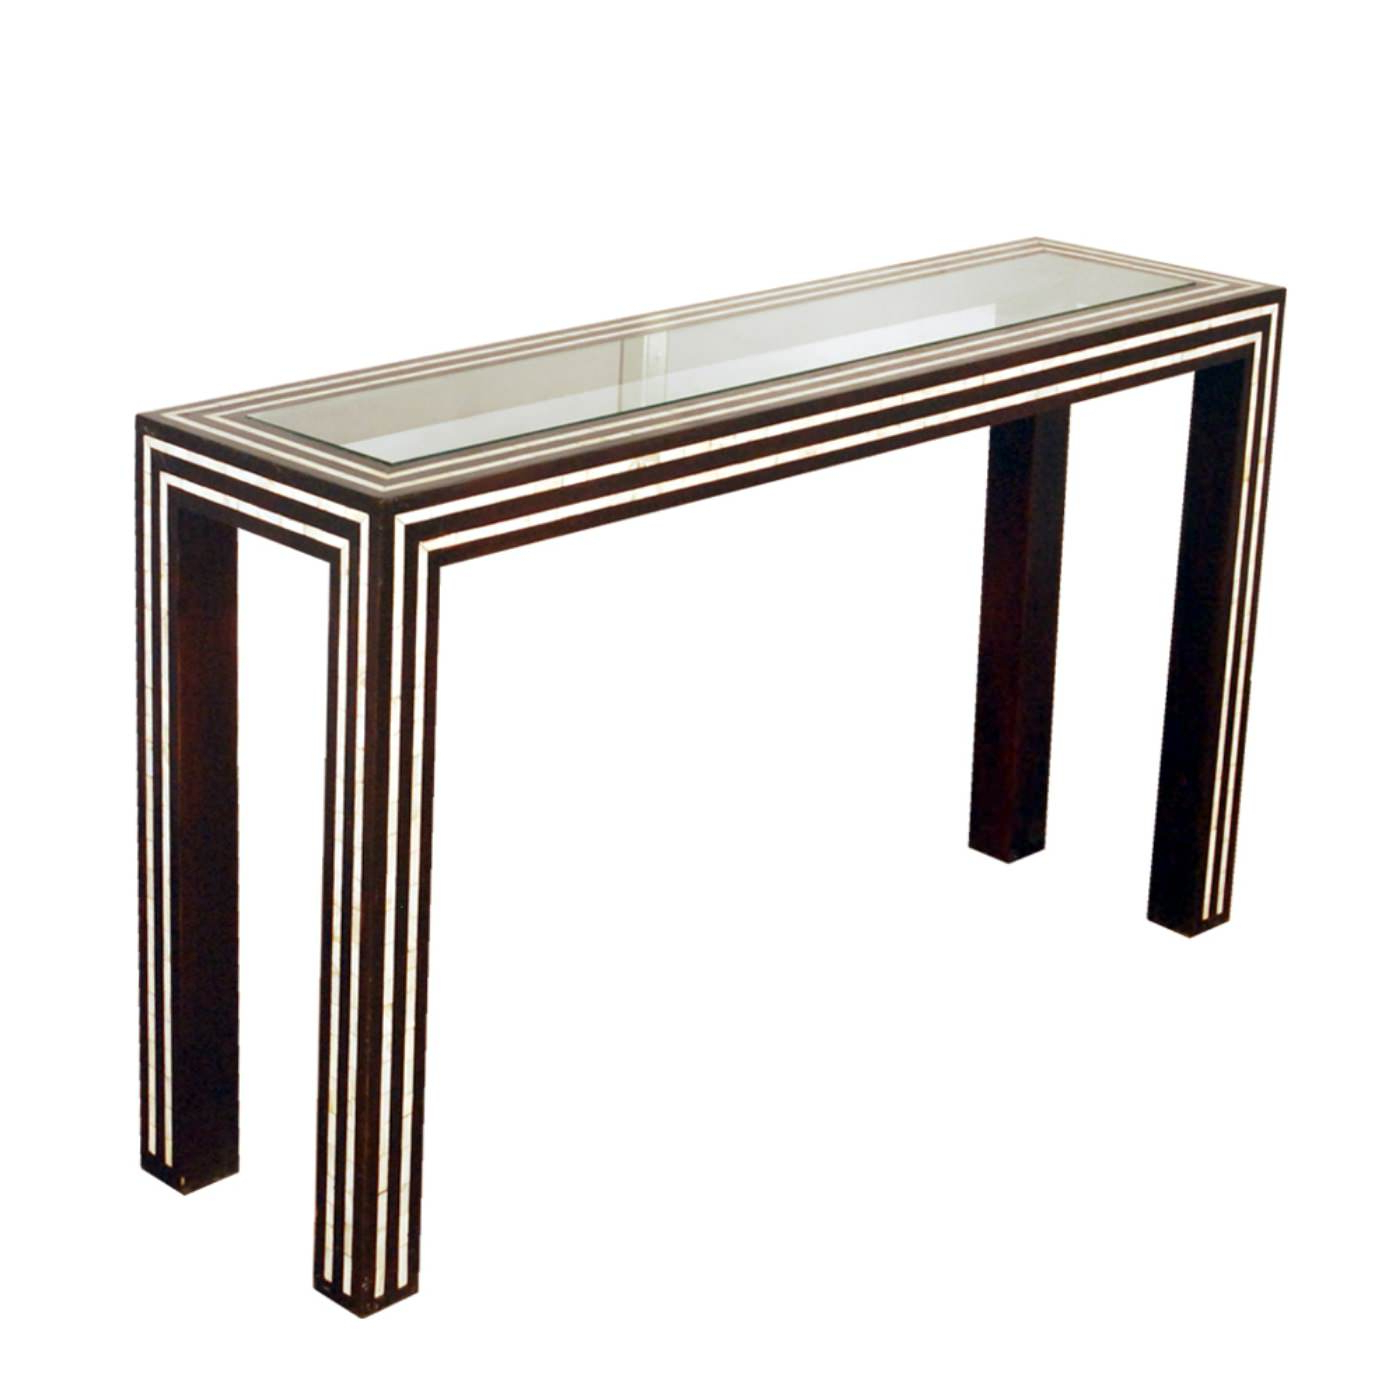 Black And White Pearl Inlay Console: Glass And Inlay Console Table For Black And White Inlay Console Tables (View 4 of 20)